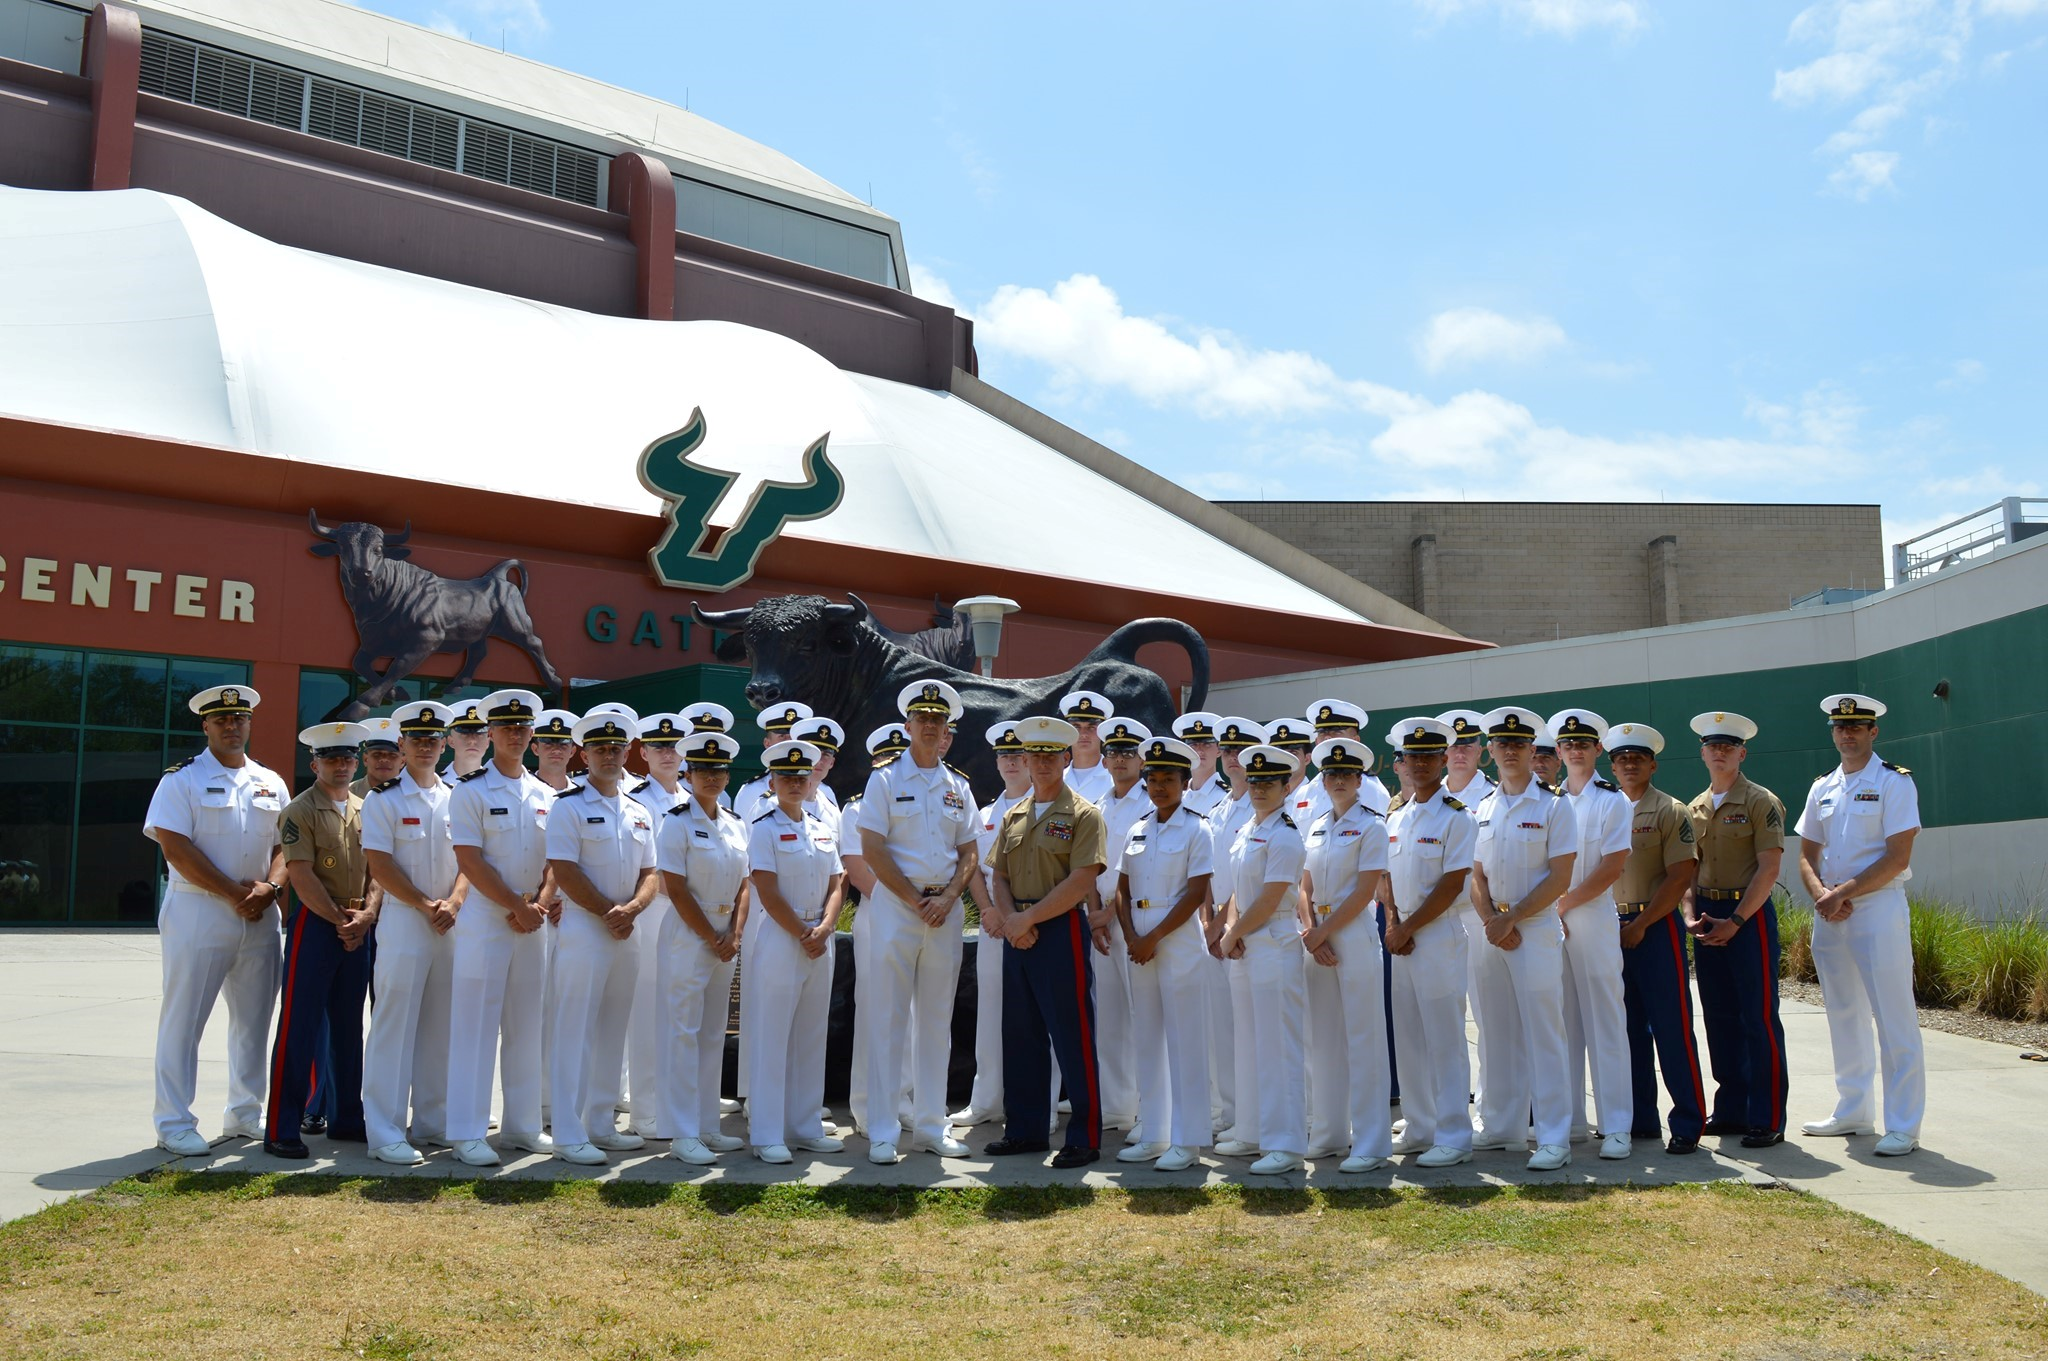 photo of group of Naval ROTC midshipmen